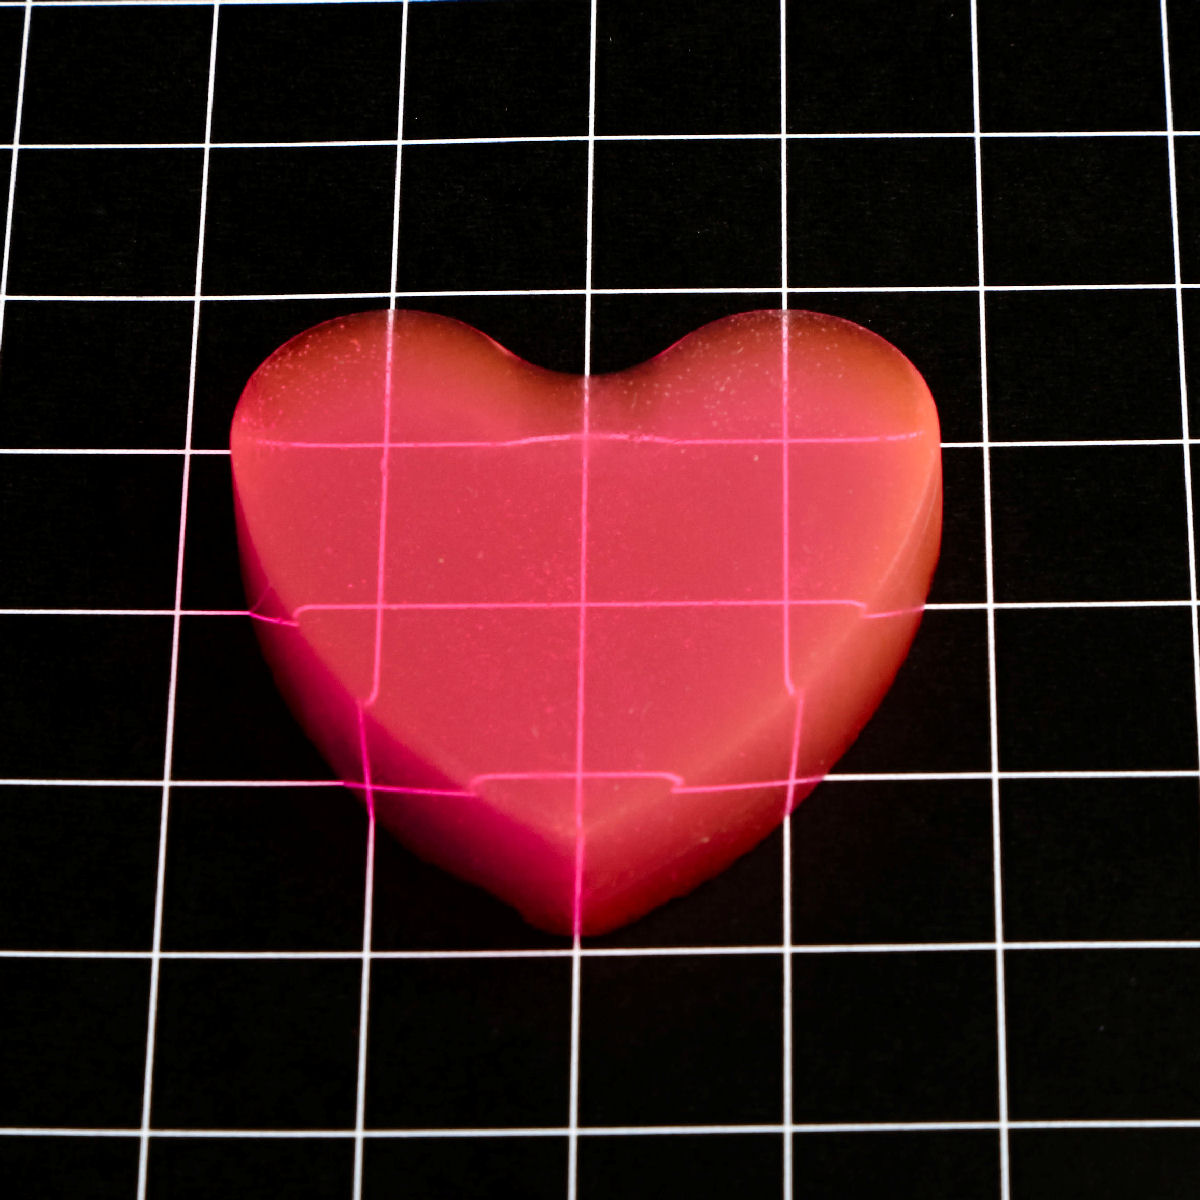 Heart-Shaped Valentine Aerogel™ from Aerogel Technologies